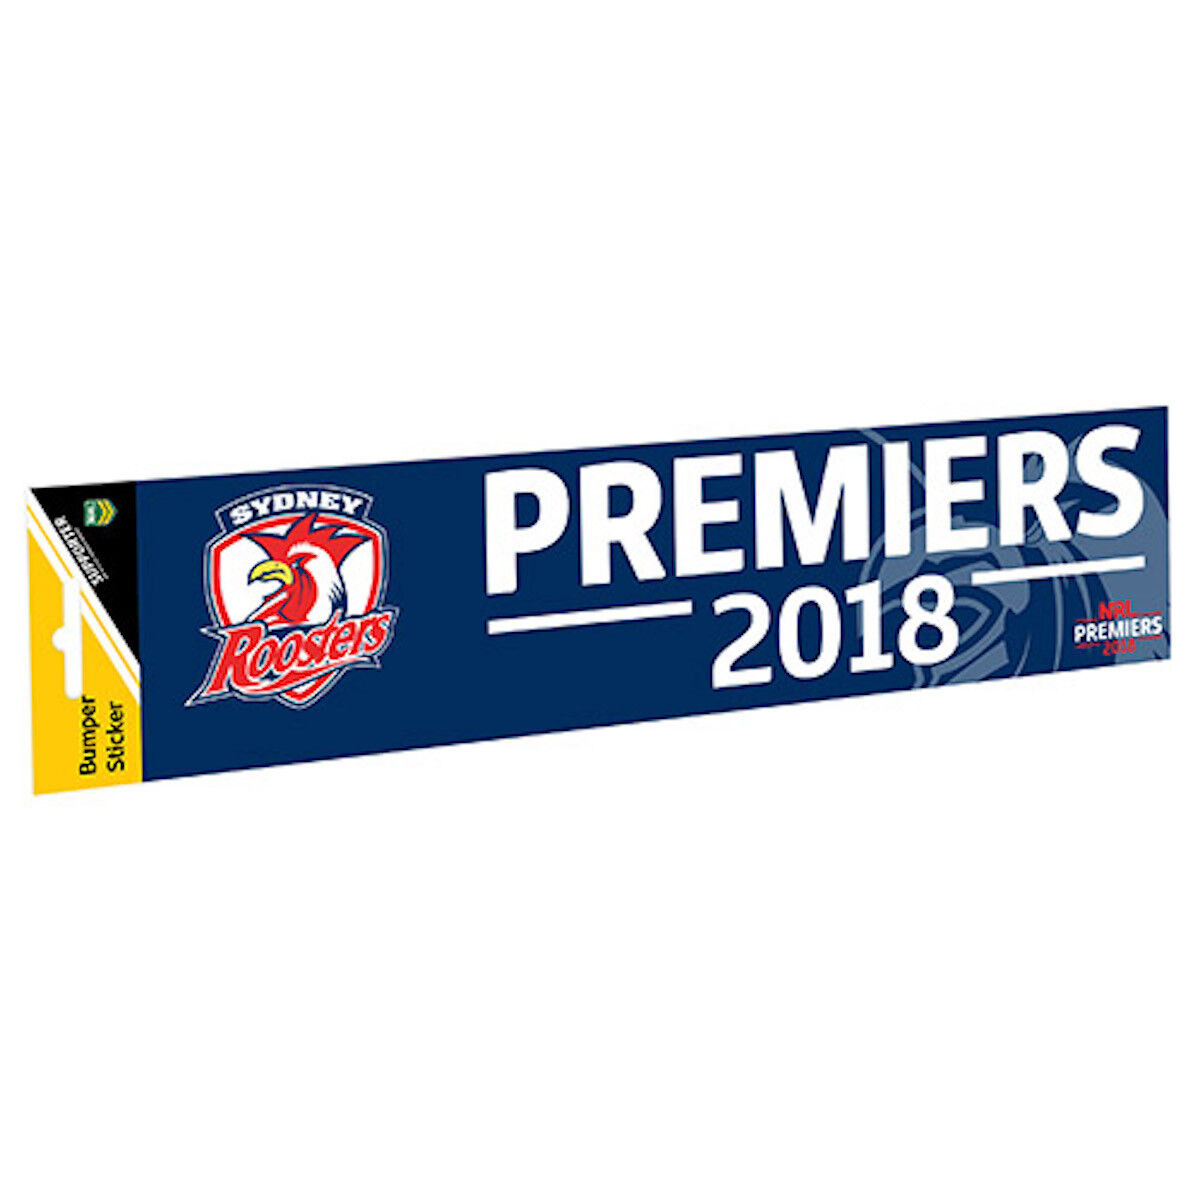 Sydney Roosters NRL 2018 Premiership Premiers Car Bumper Decal Sticker set of 3